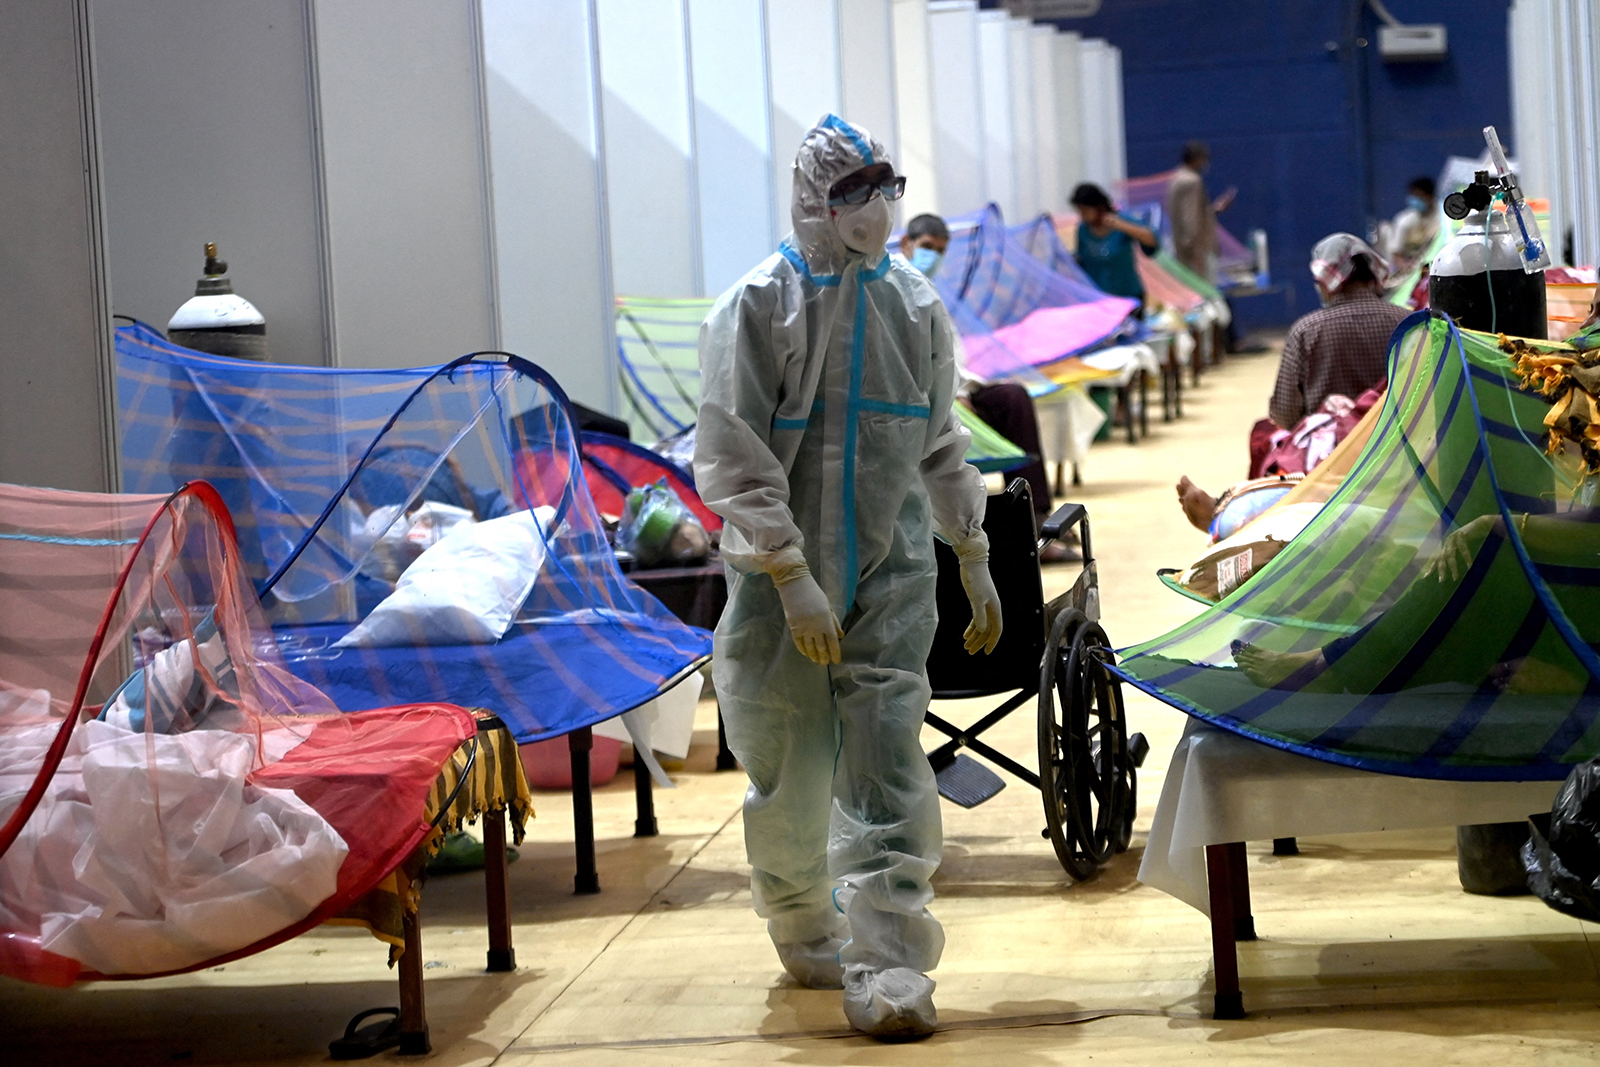 A health worker walks inside the Commonwealth Games stadium temporarily converted into a Covid-19 care center in New Delhi, India, on May 5.